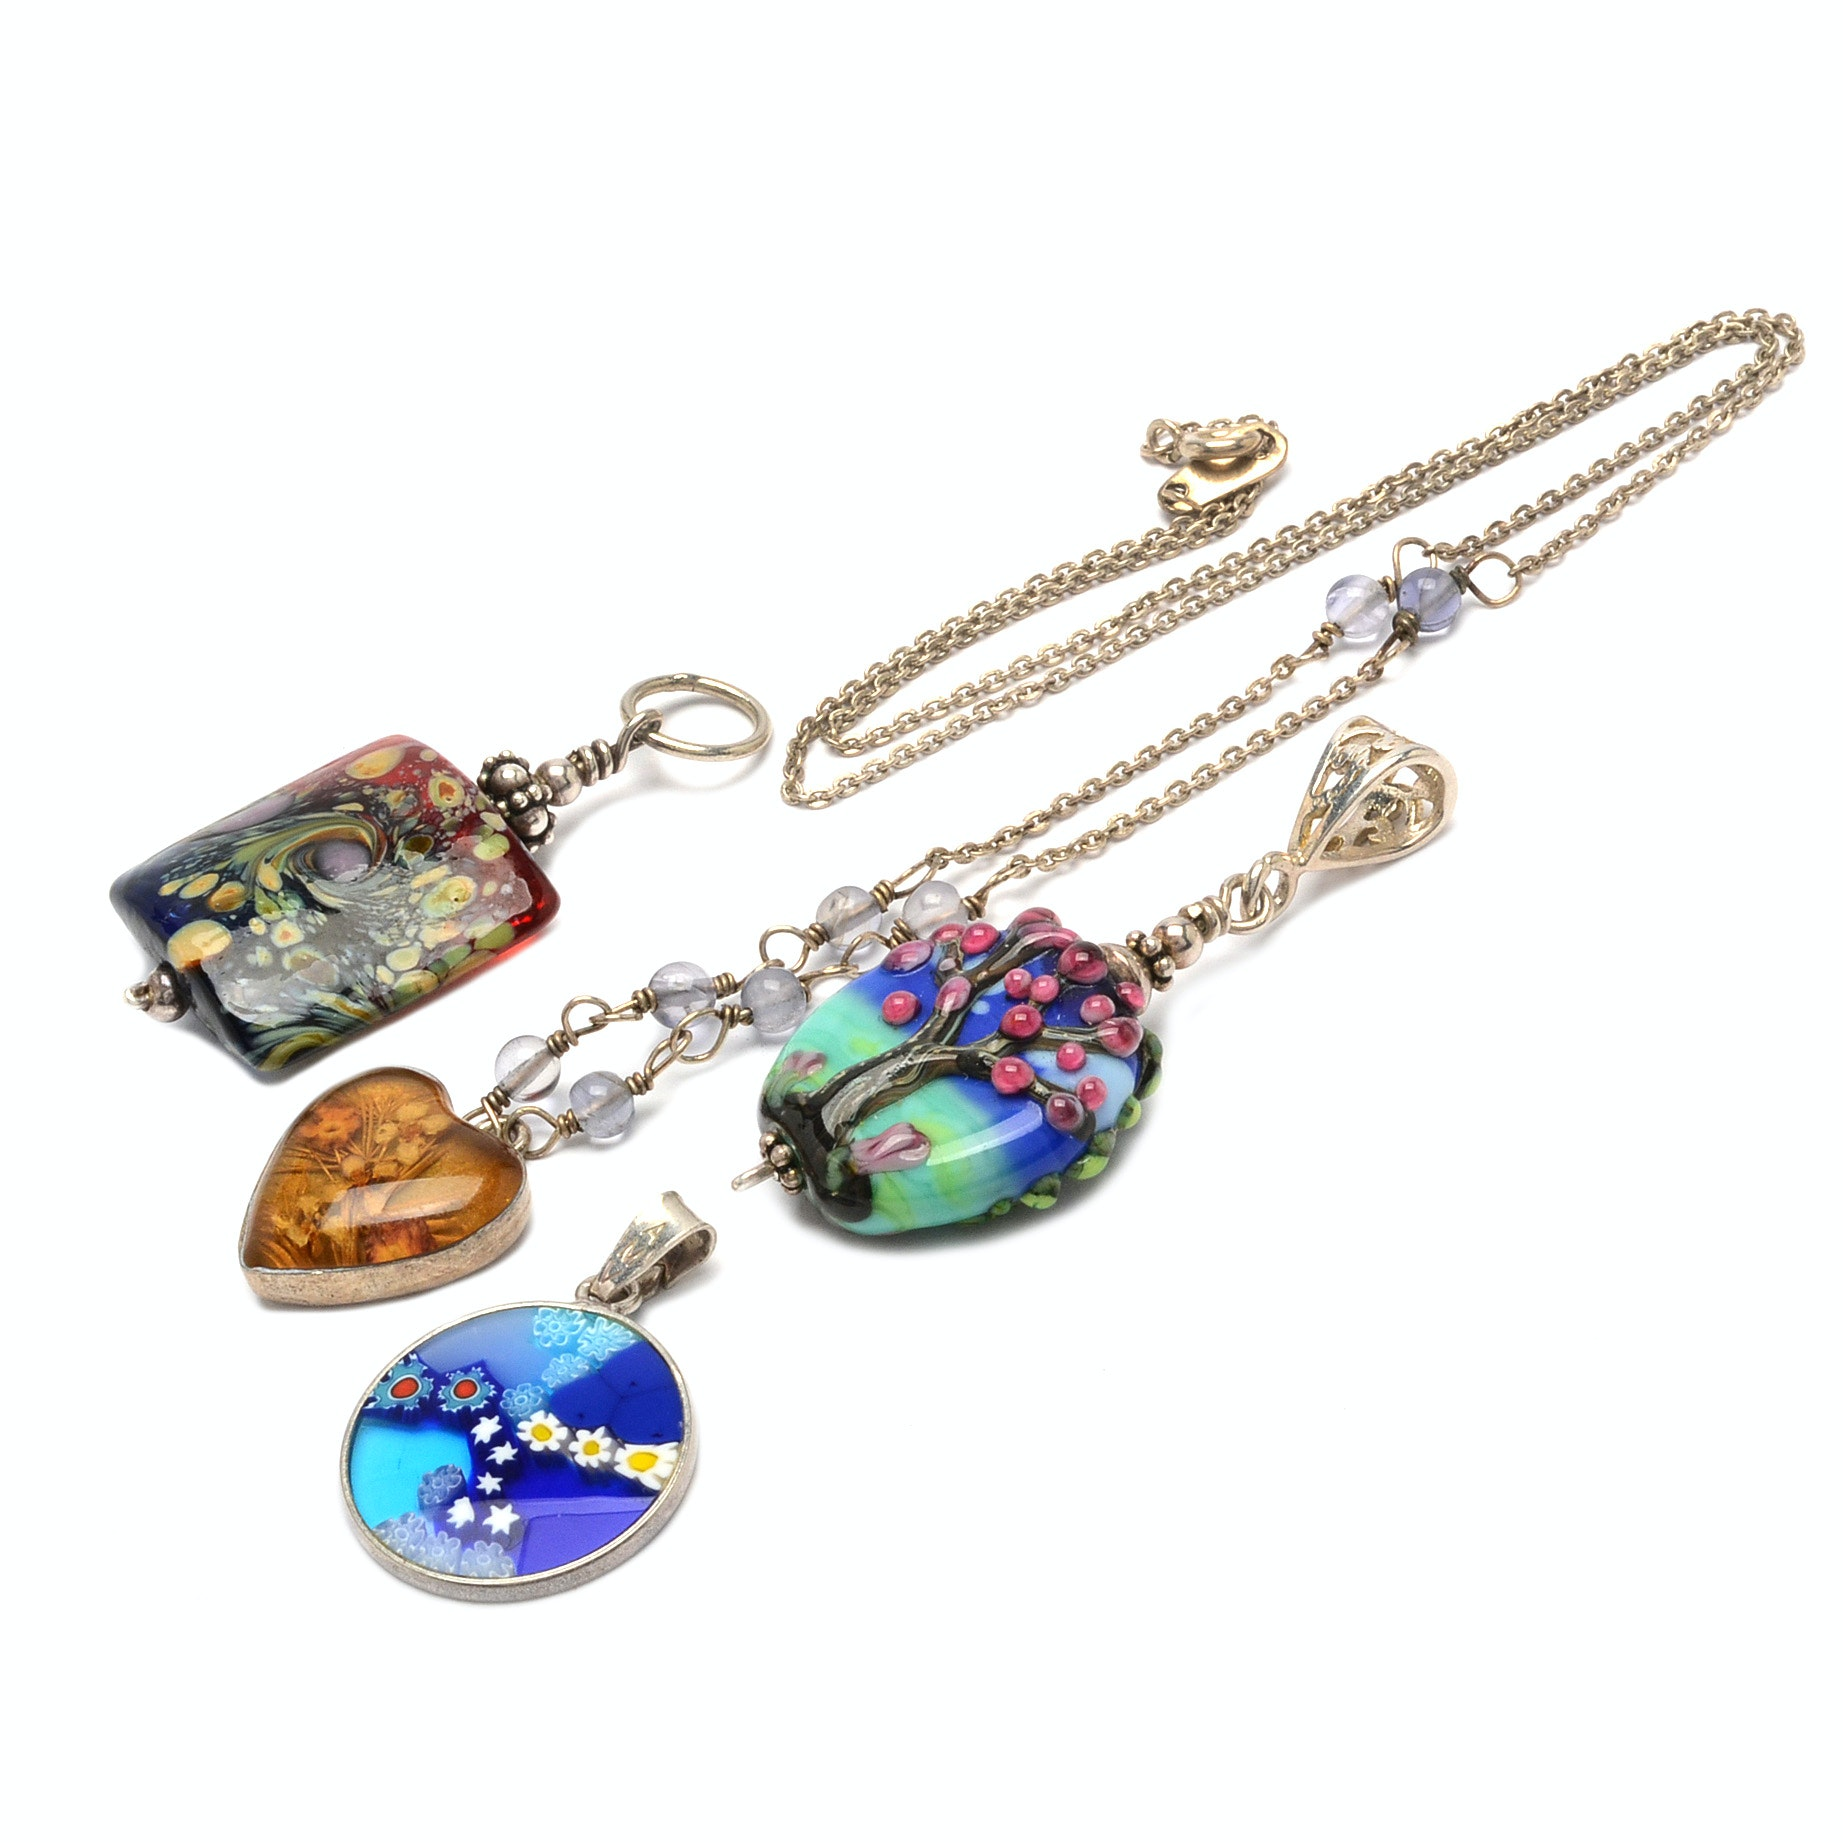 Assorted Fashion Pendants and Necklace